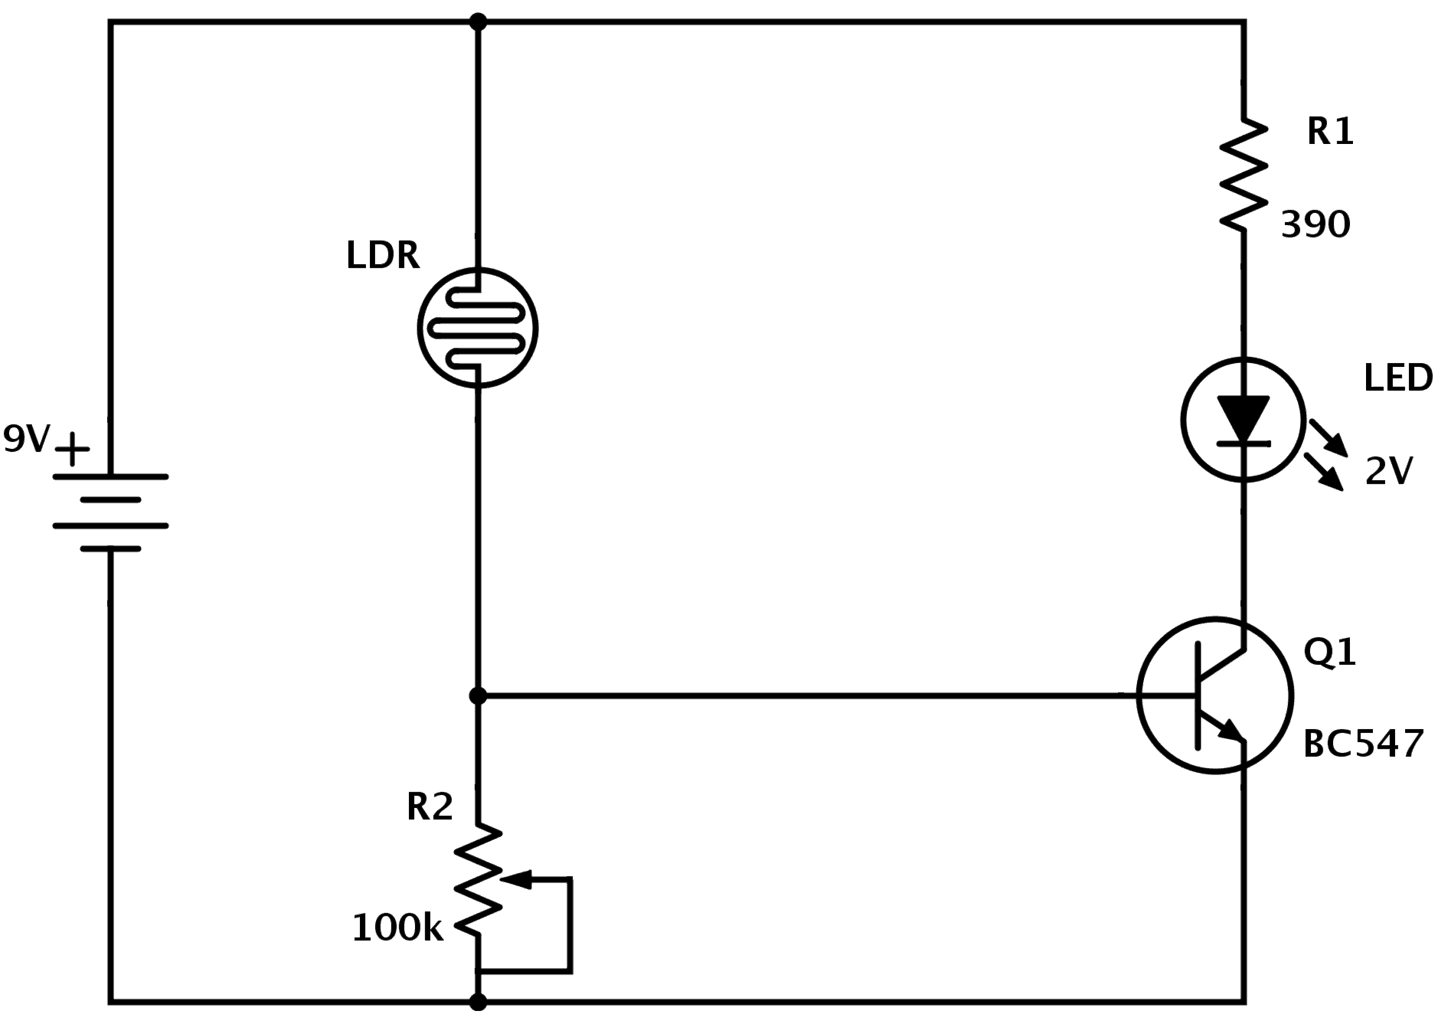 Draw A Simple Circuit Diagram Using Symbols Of Electrical Components